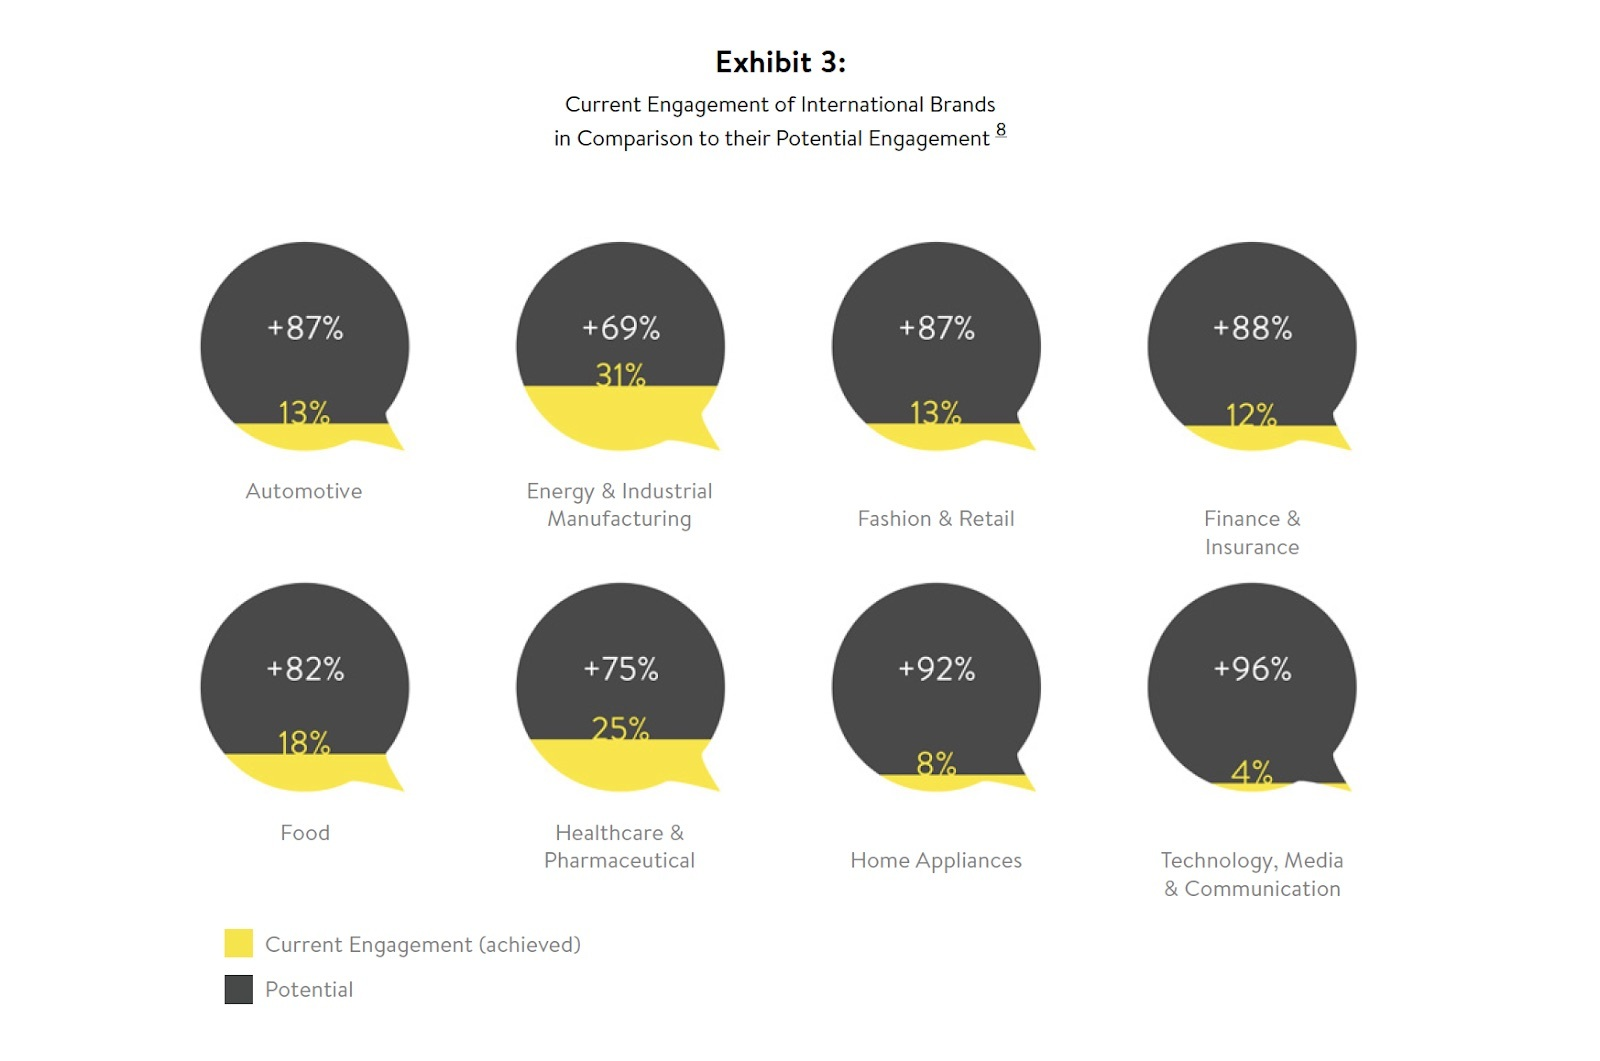 Gap in current and potential engagement for international brands